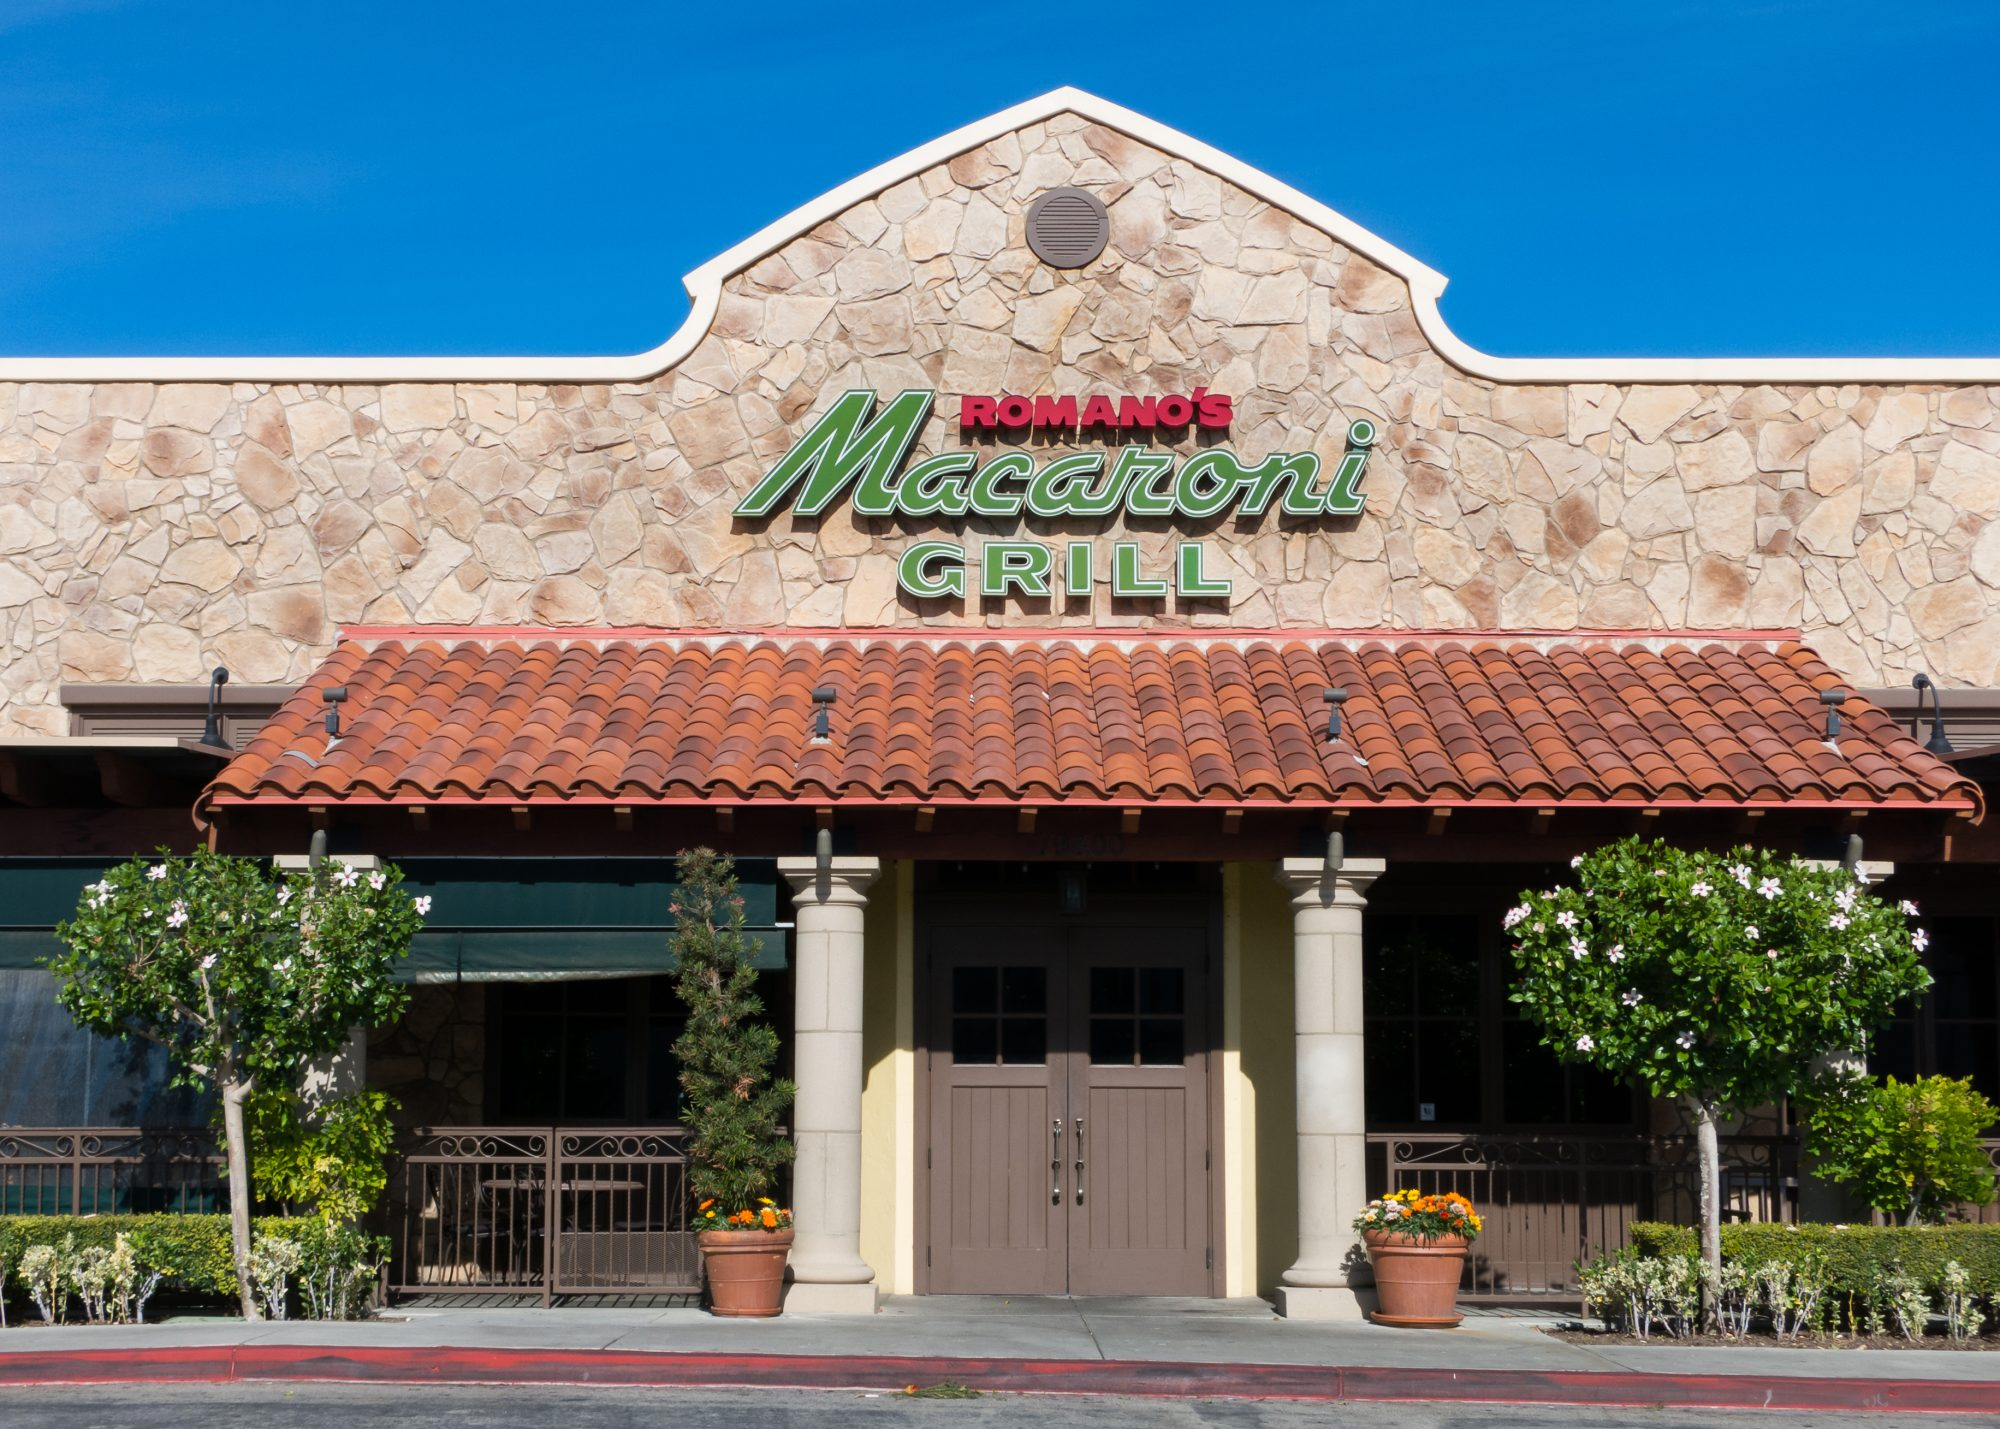 Romano's Macaroni Grill , Northridge, California, November 24, 2014.